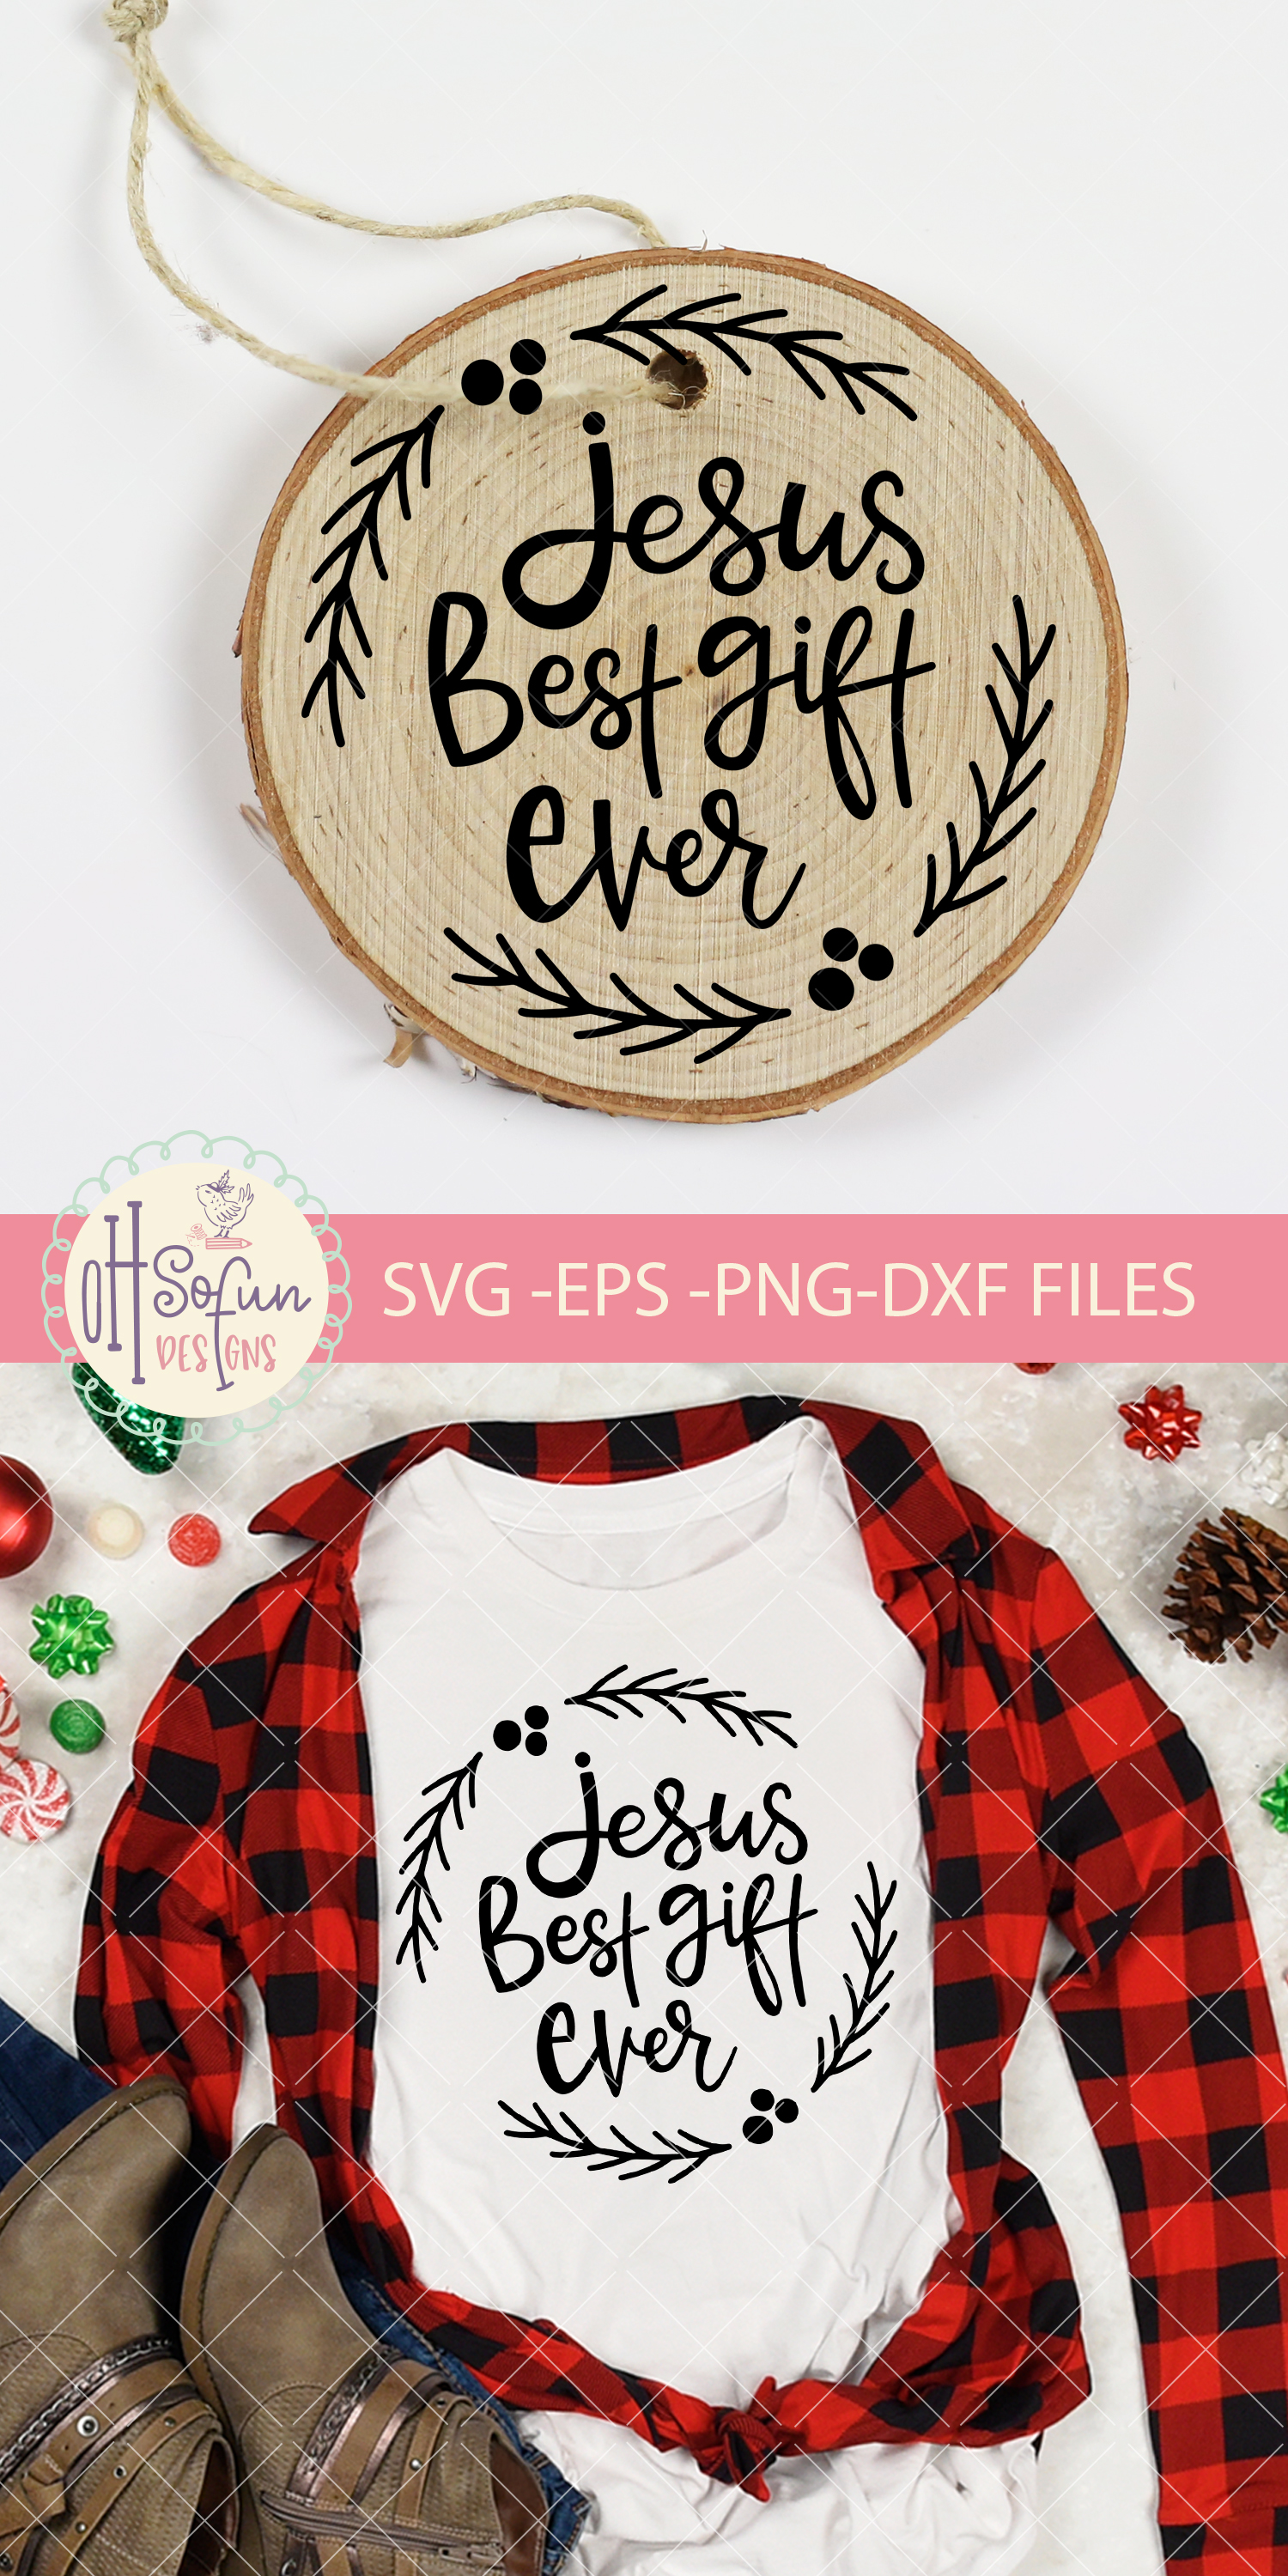 Jesus best gift ever, hand lettering Christmas ornament SVG example image 2